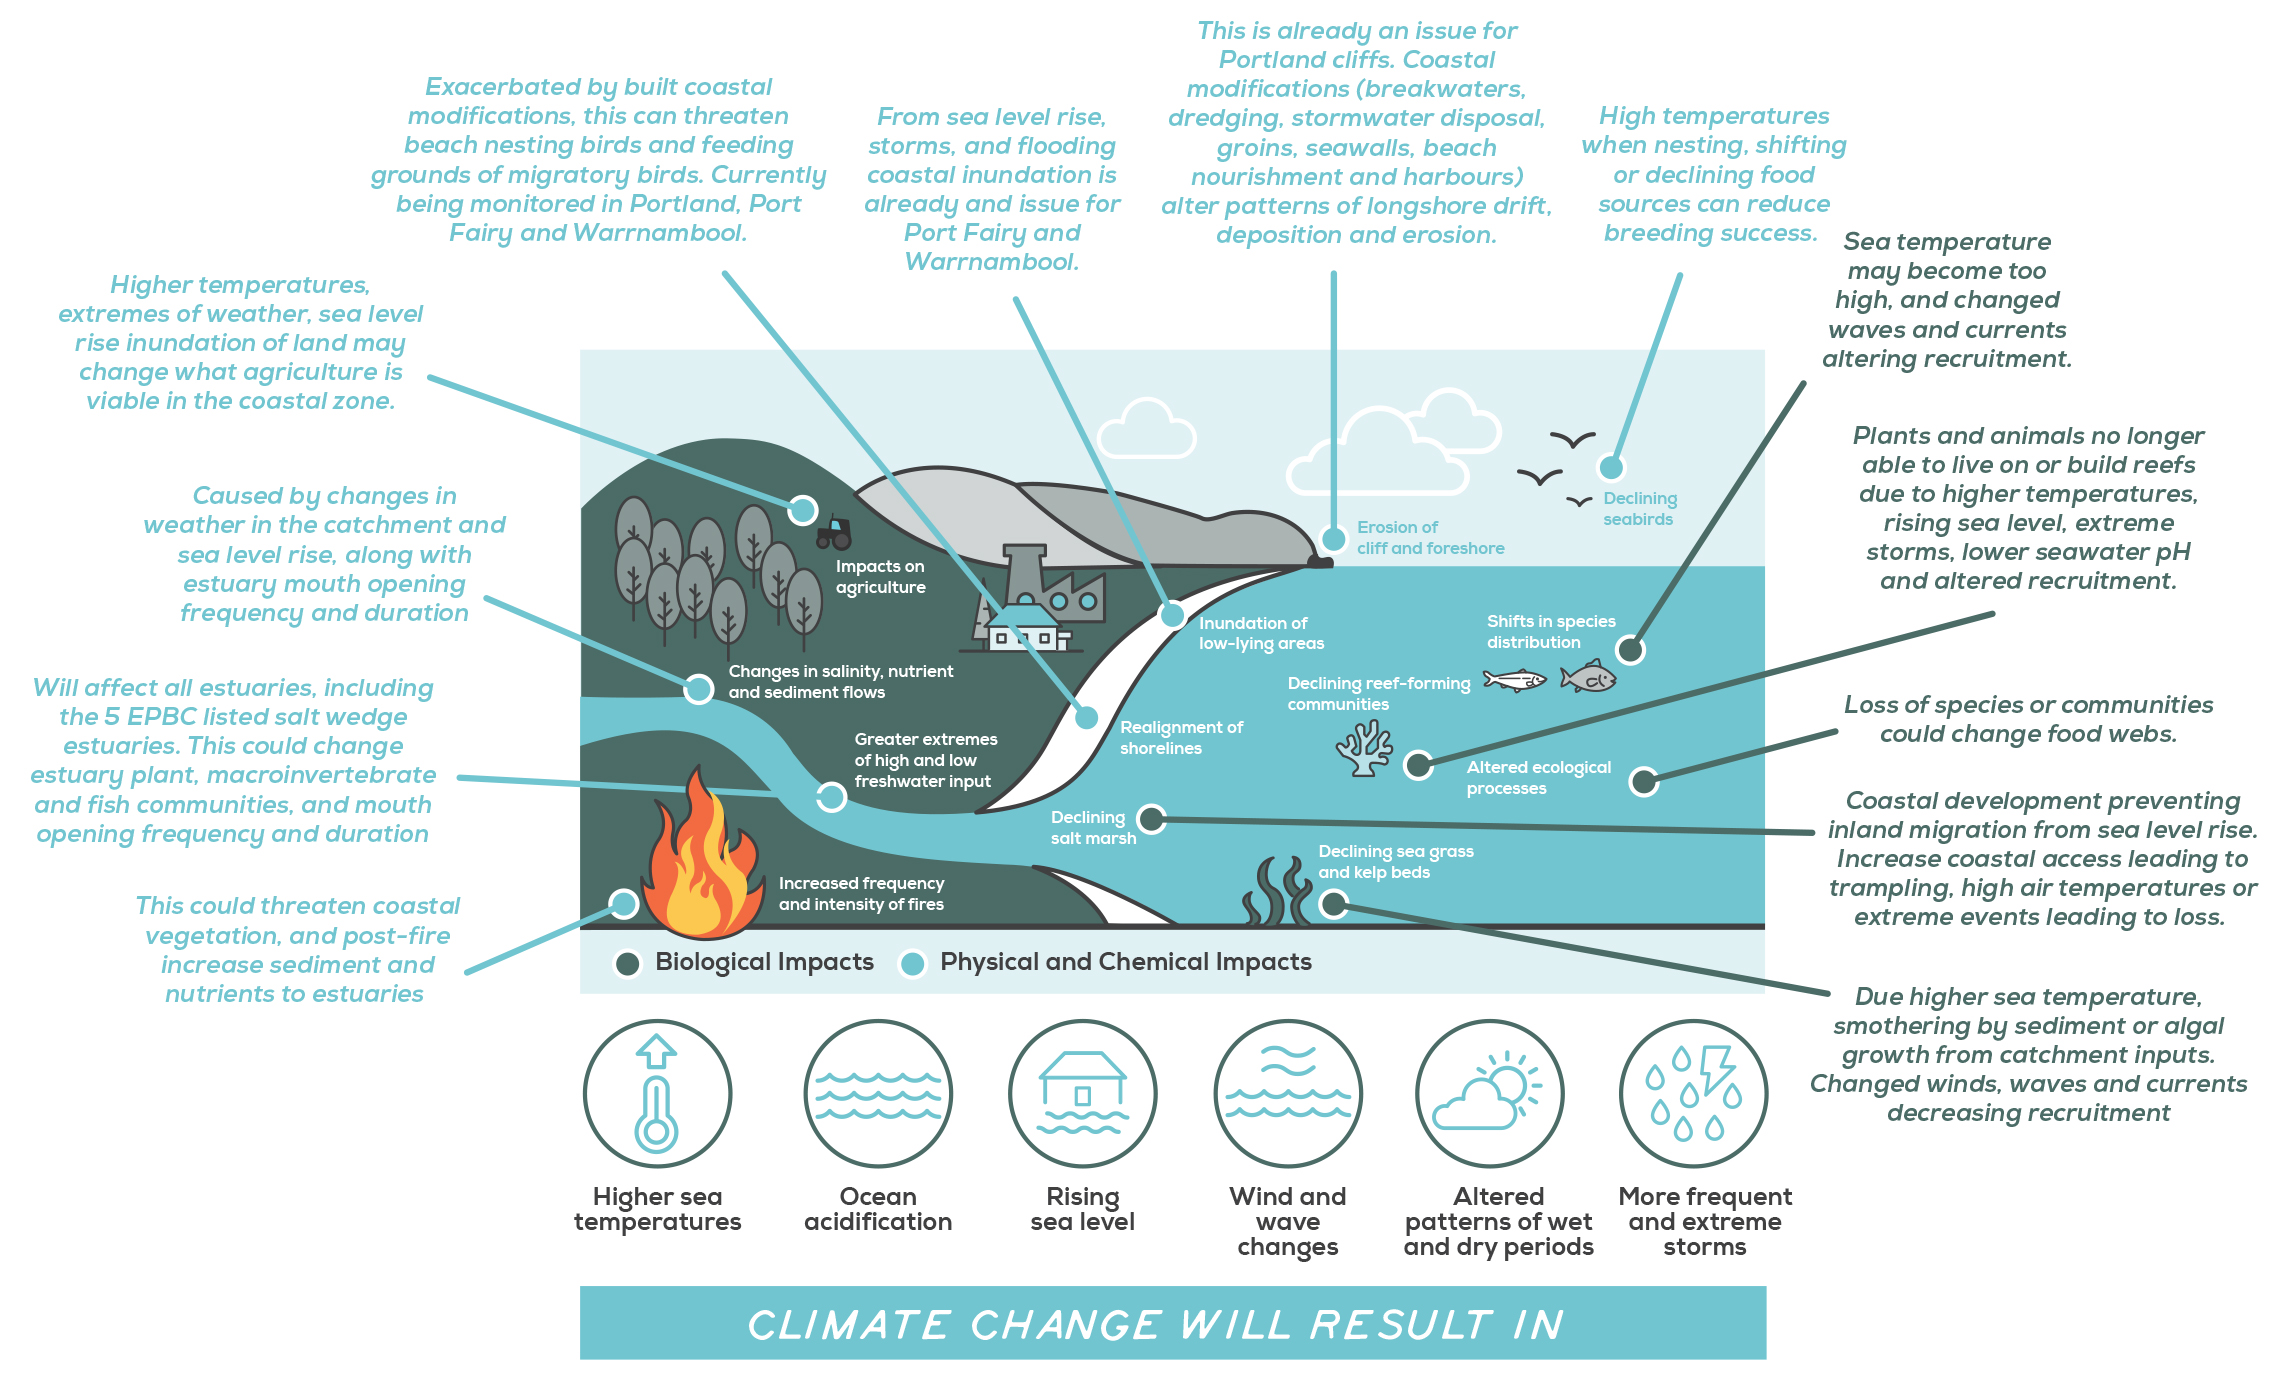 Diagram presenting the impacts of climate change on the marine and coastal environment.